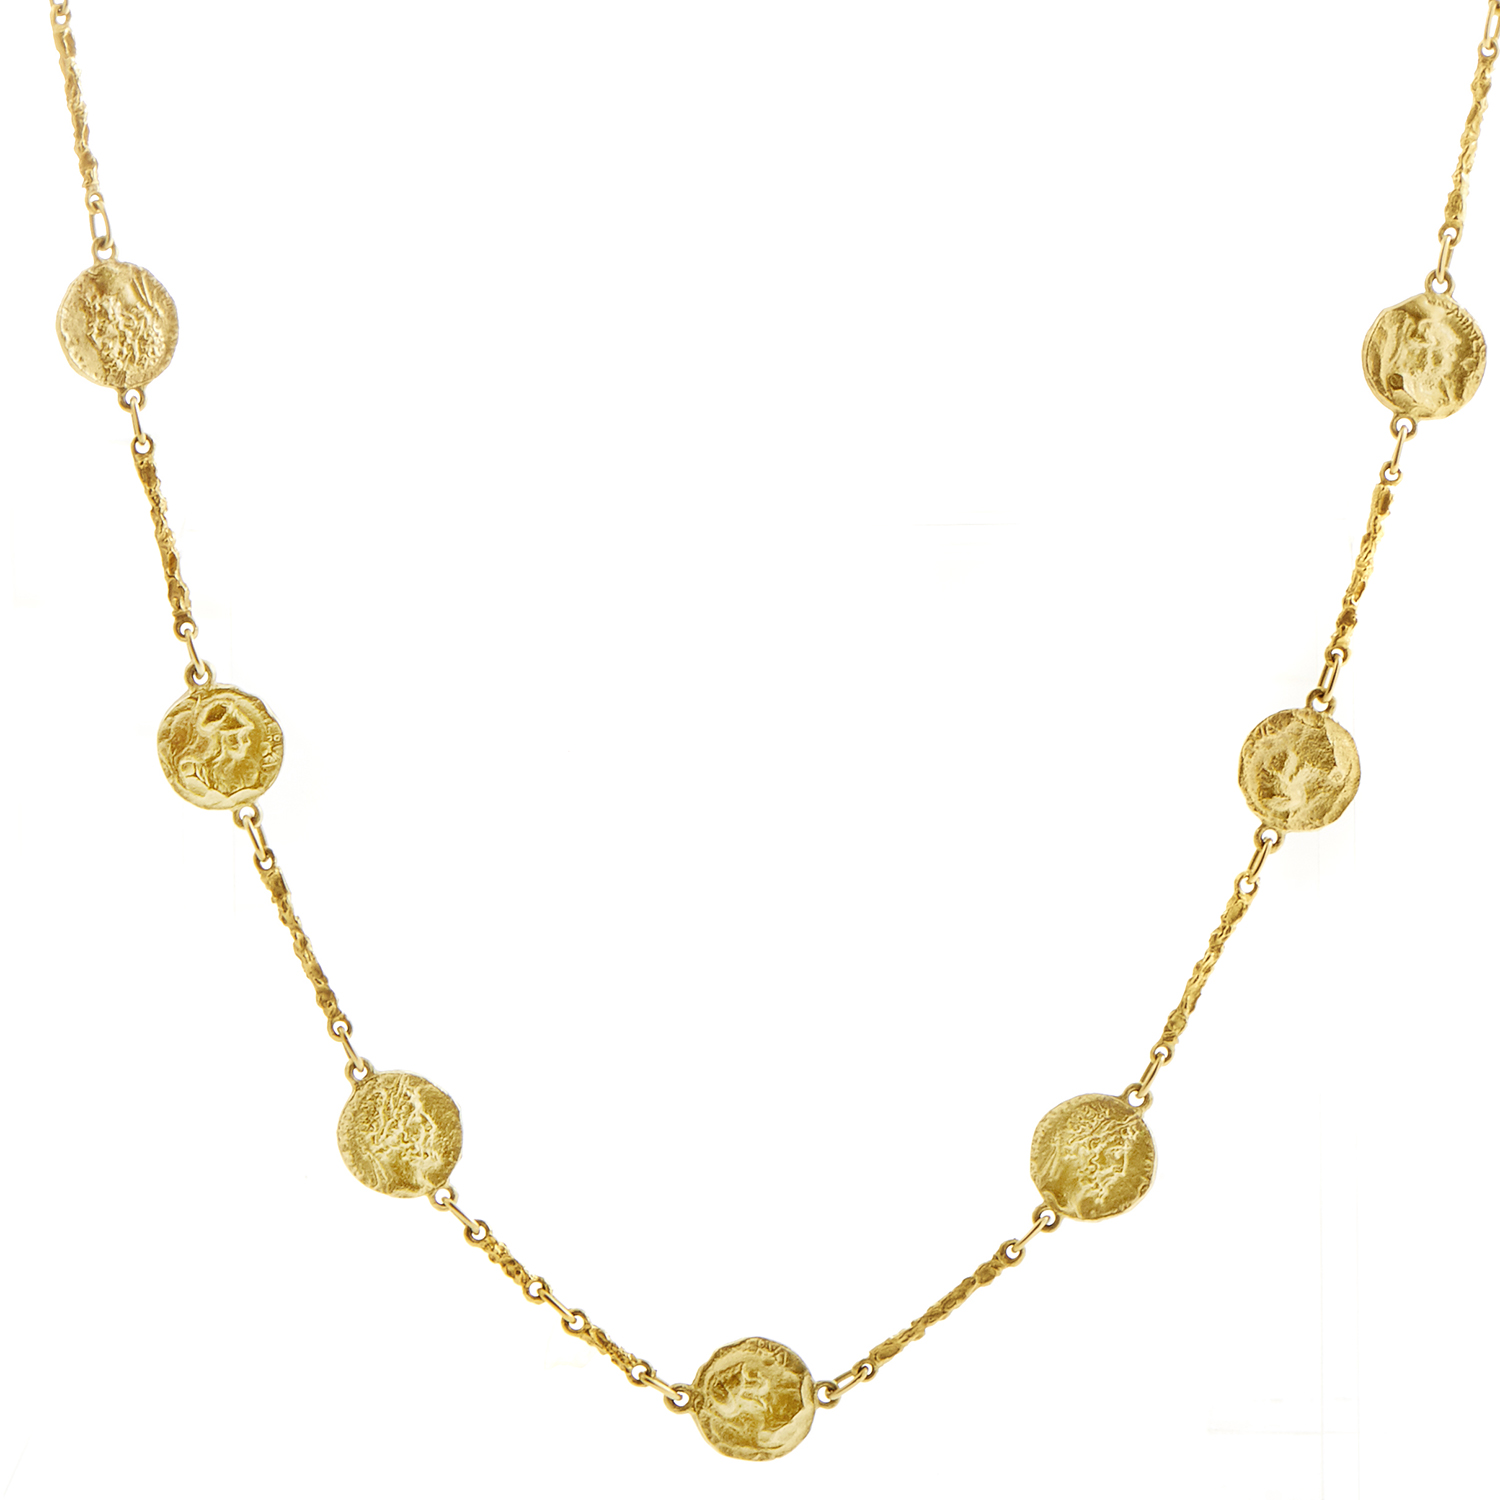 Hammerman Brothers Women's 18K Yellow Gold Coin Sautoir Necklace